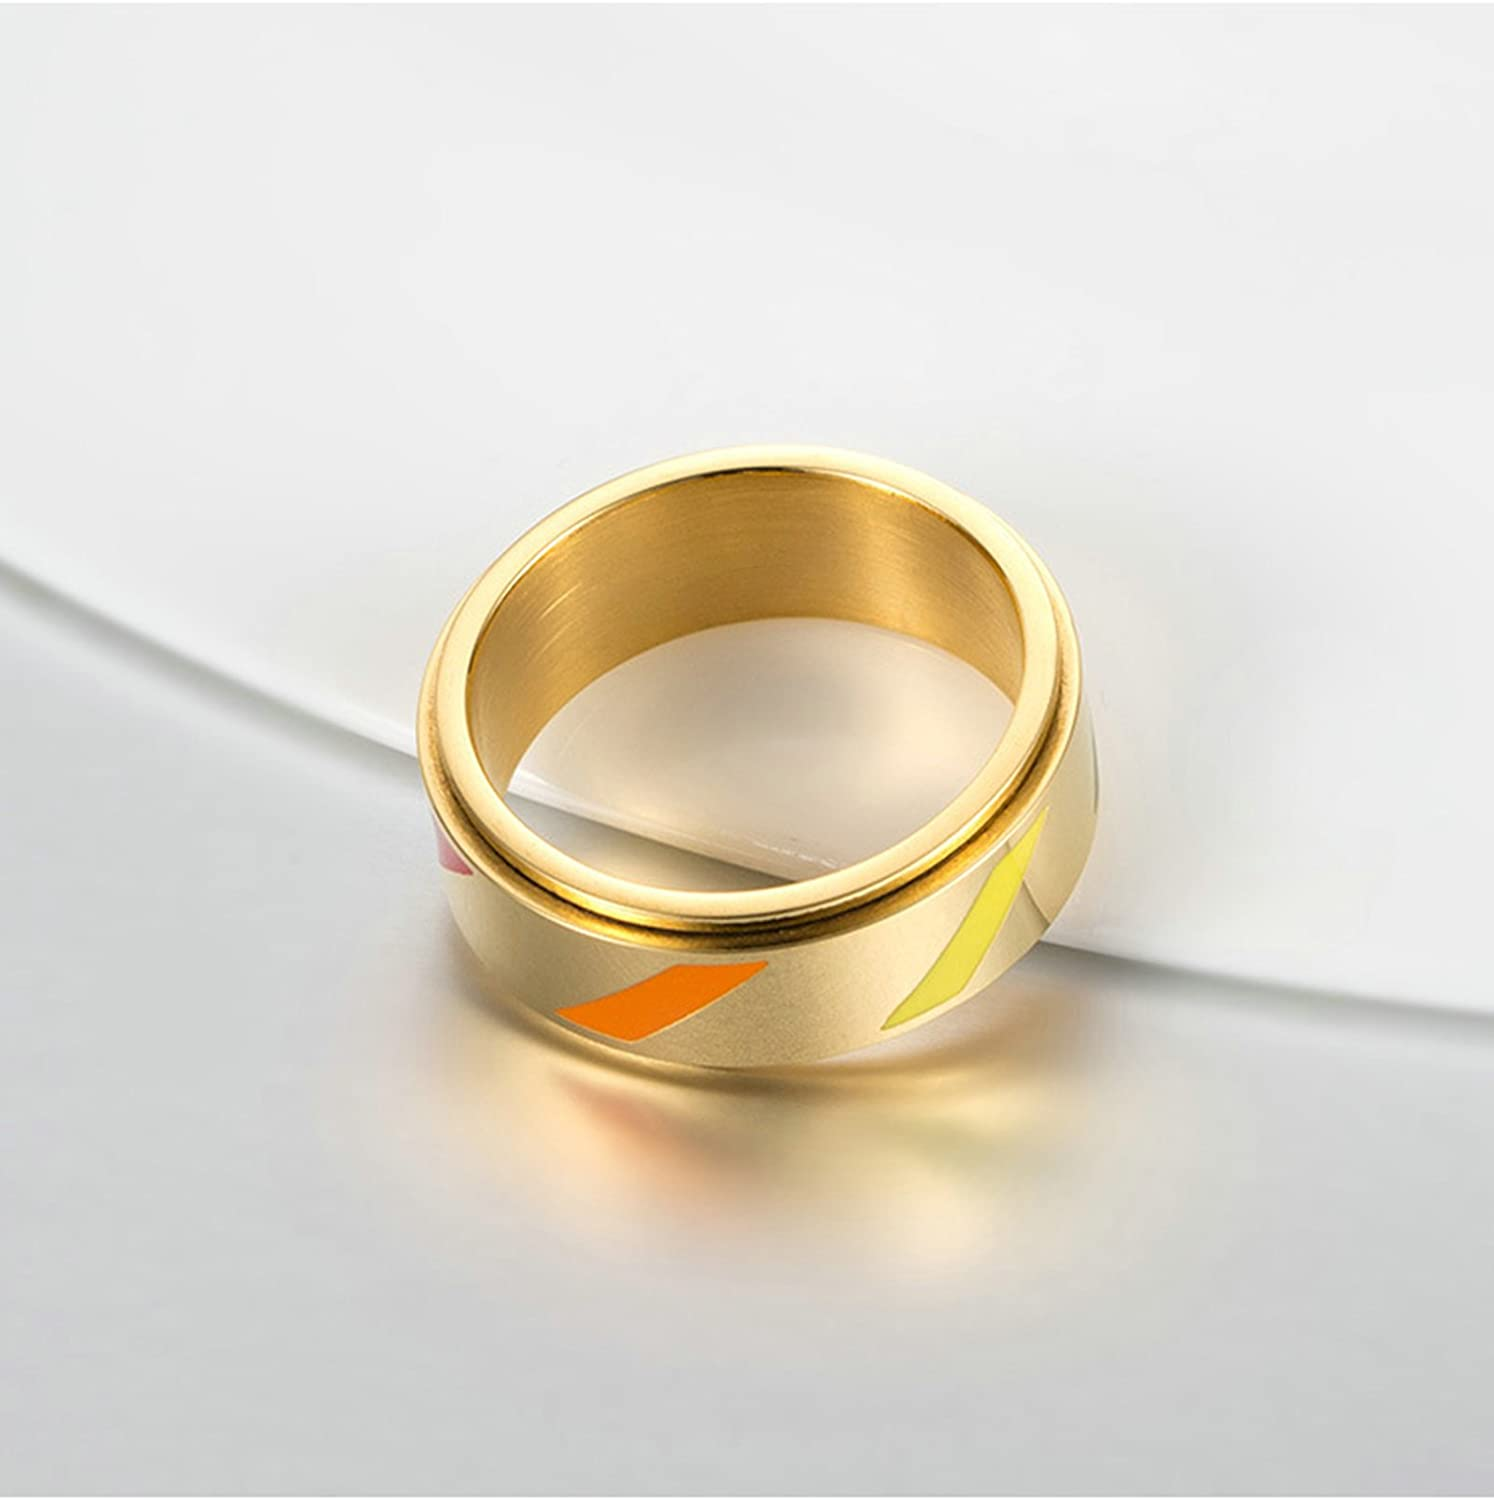 Bishilin Stainless Steel Rings Wedding Gay Hochlganz Polished Round Wedding Rings and Bands Size 12